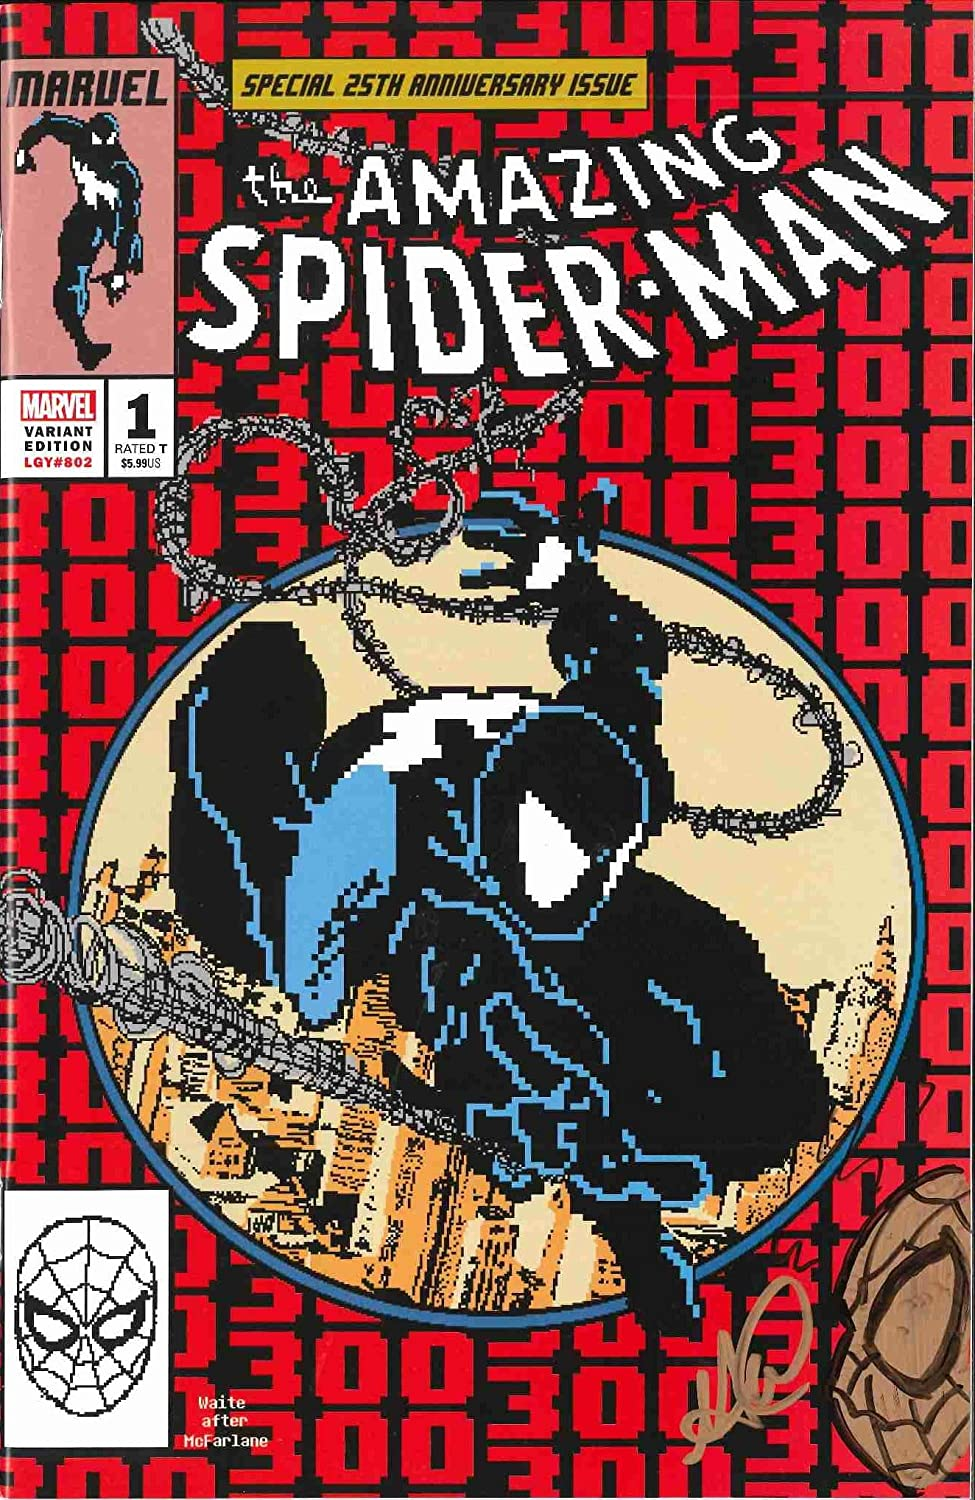 Matthew Waite Signed Amazing Spider-Man #300 Homage 8-bit Cover W/Remark! (The Cowboy House COA)